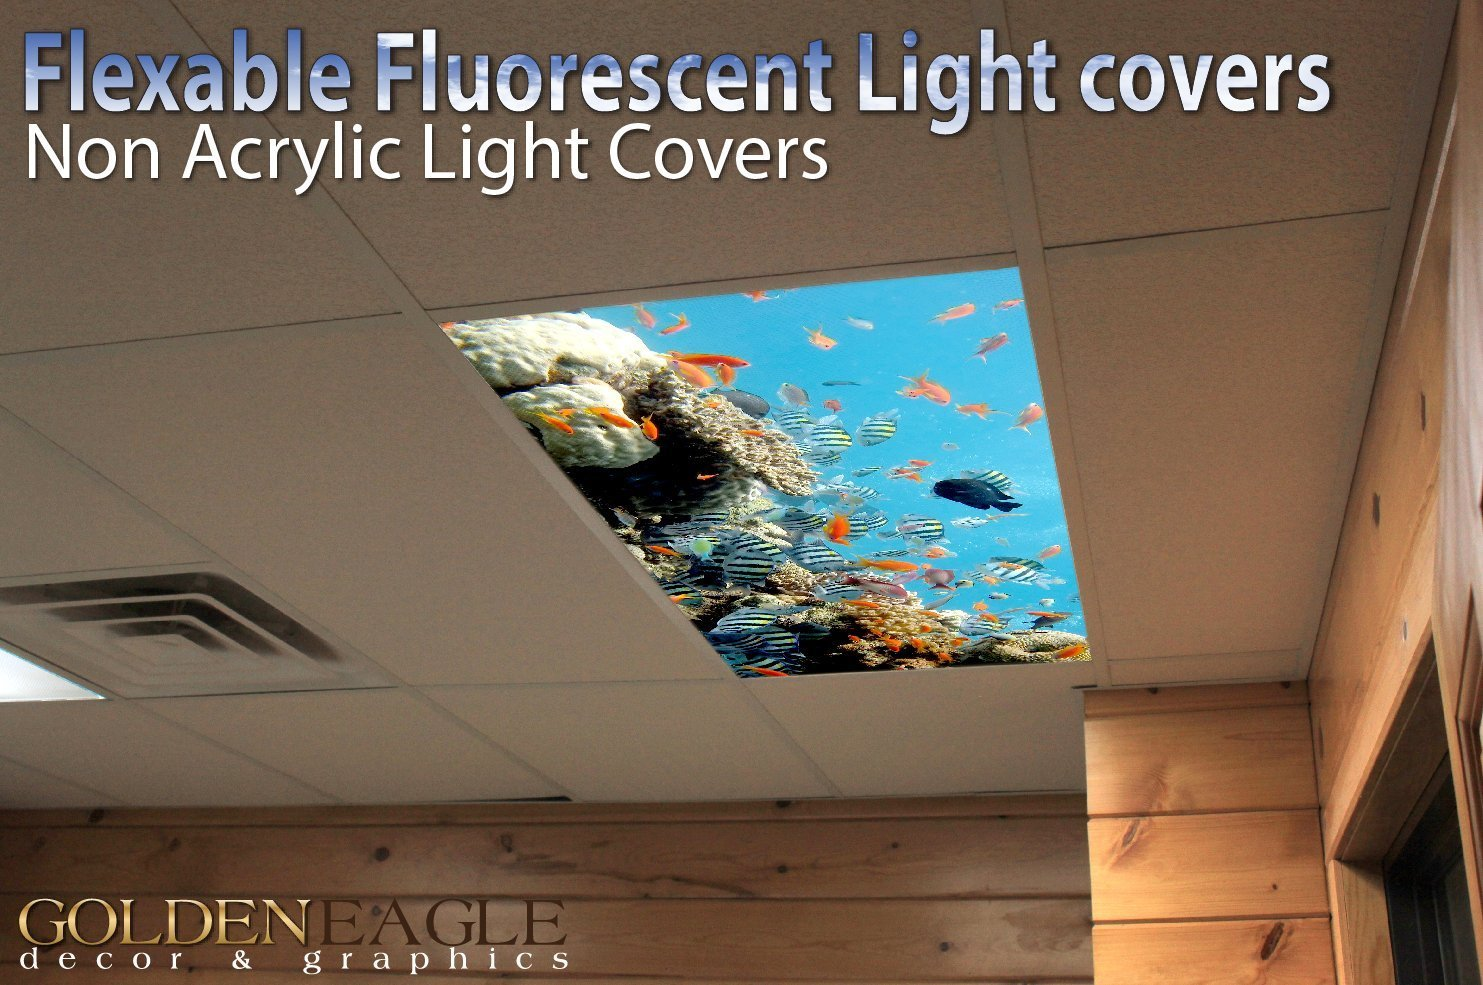 Ocean Reef - 2ft x 4ft Drop Ceiling Fluorescent Decorative Ceiling Light Cover Skylight Film